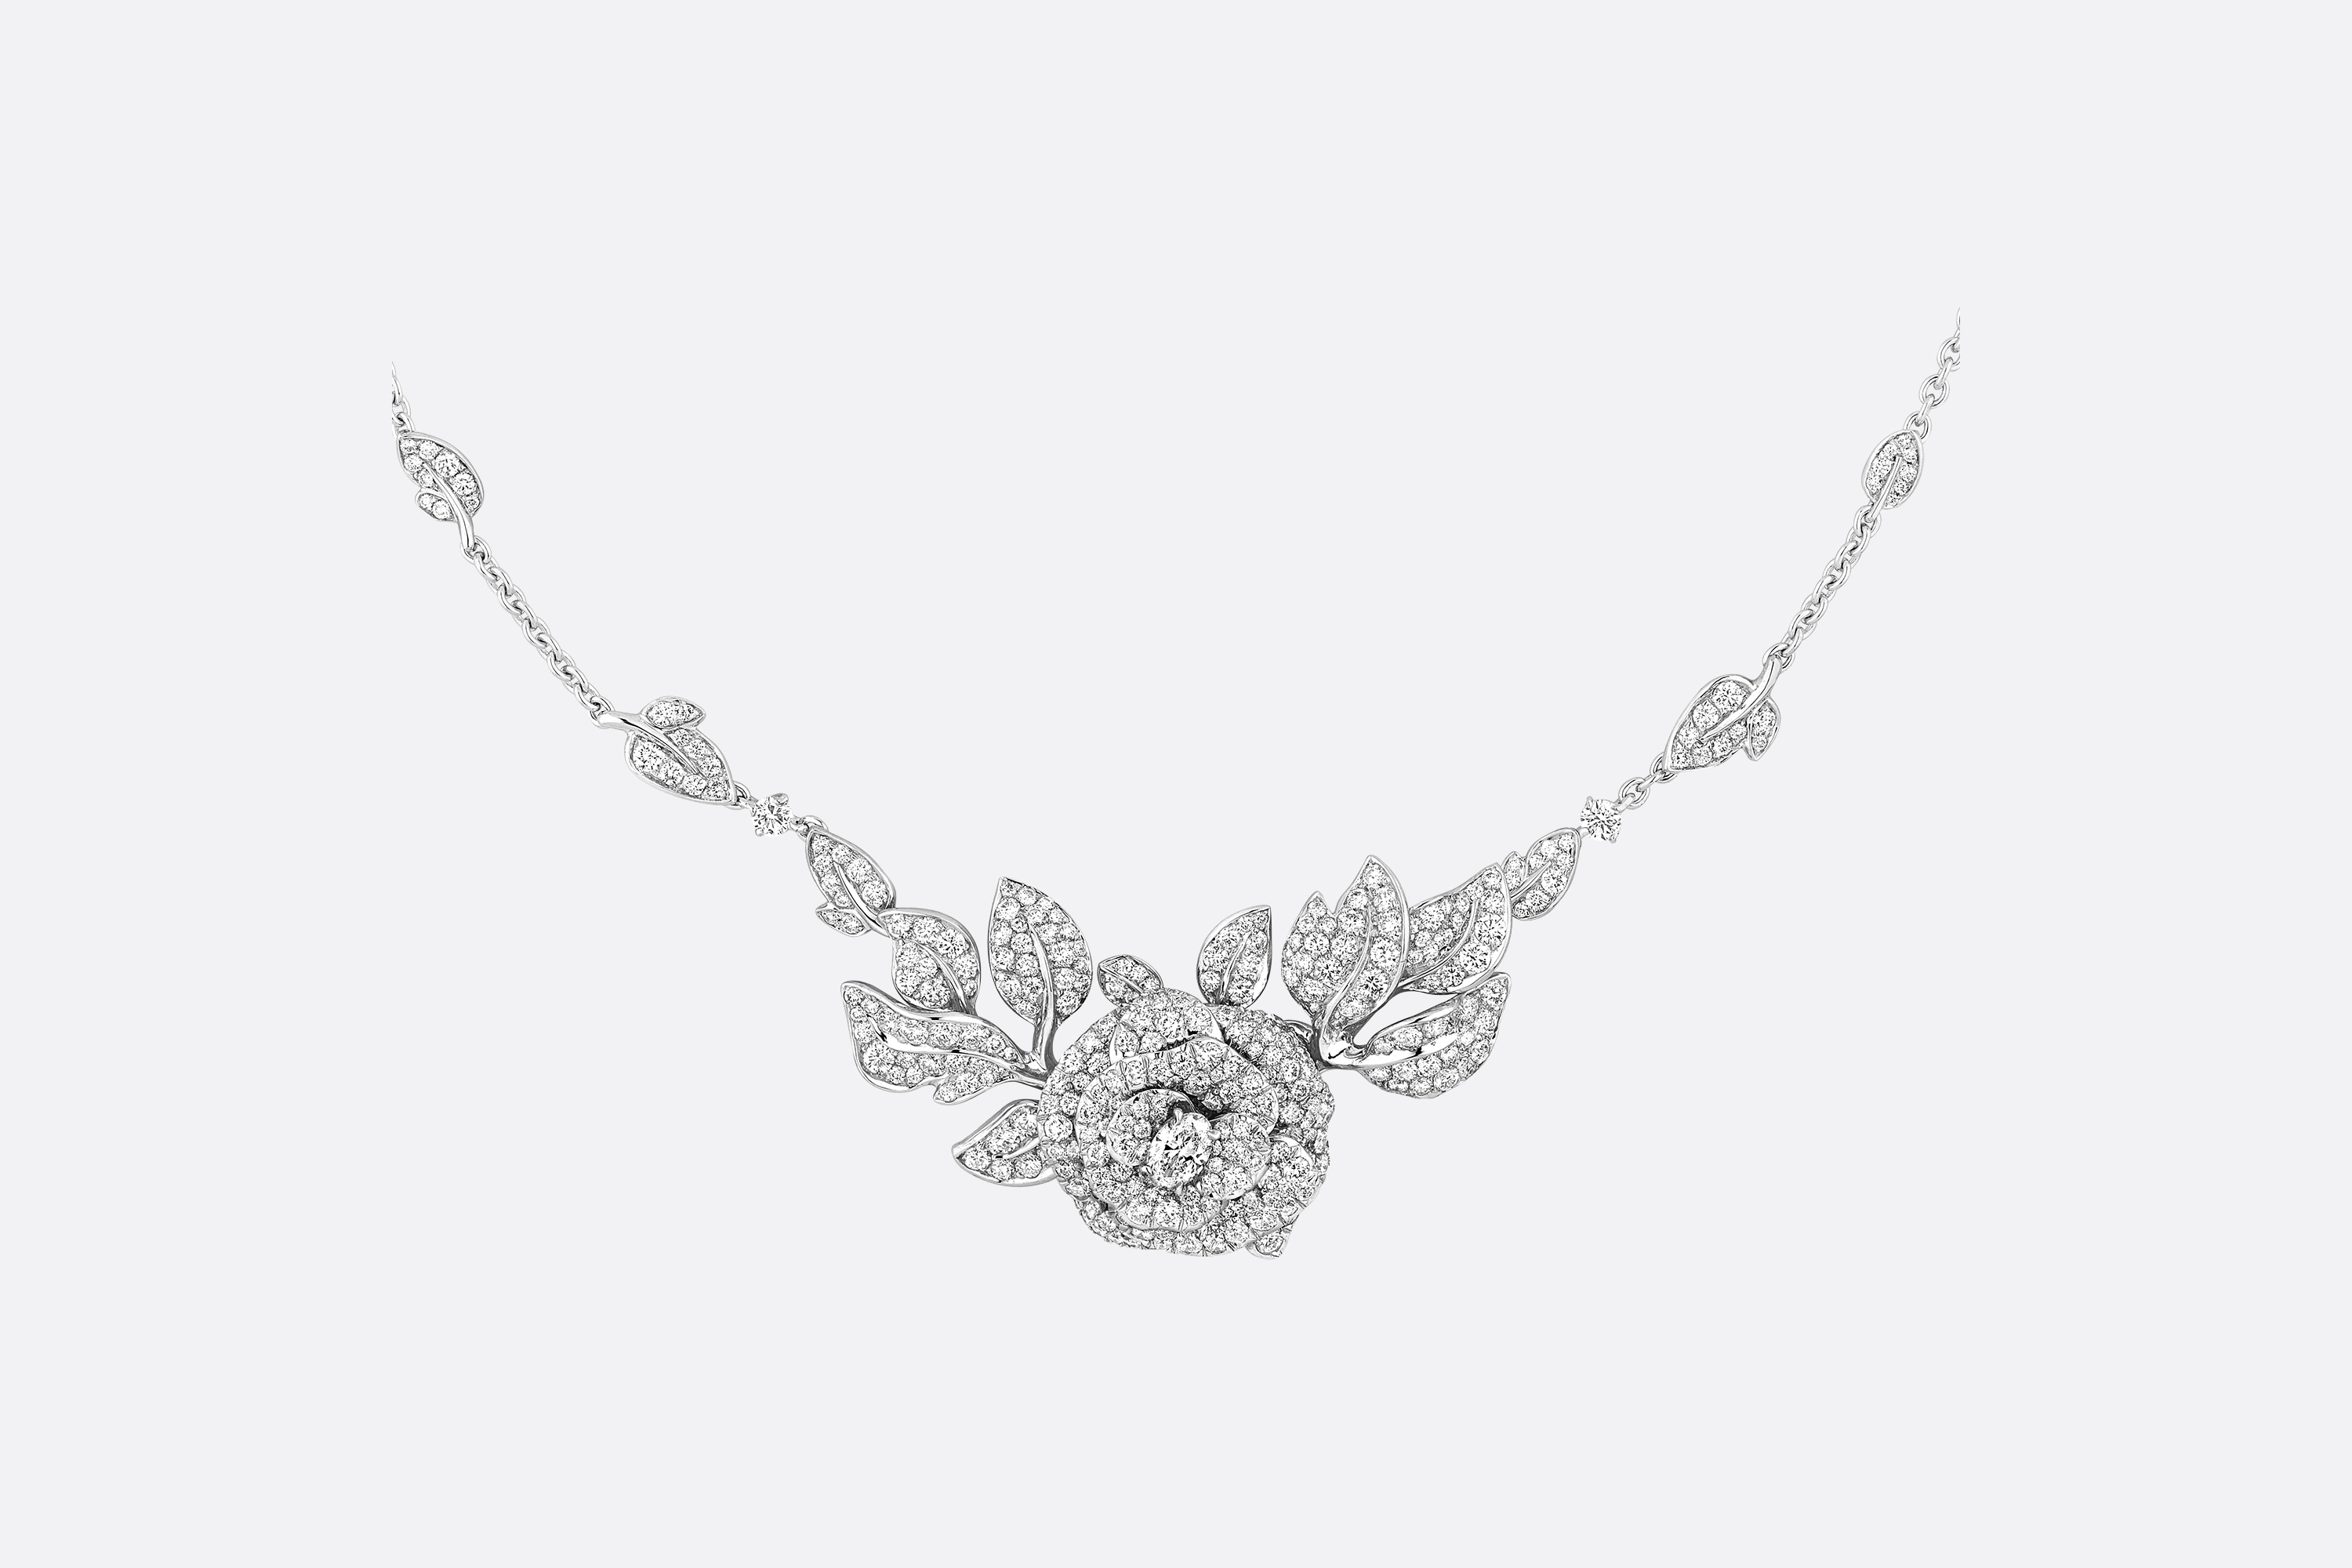 Collier Rose Dior Bagatelle GM Vue de face Ouverture de la galerie d'images